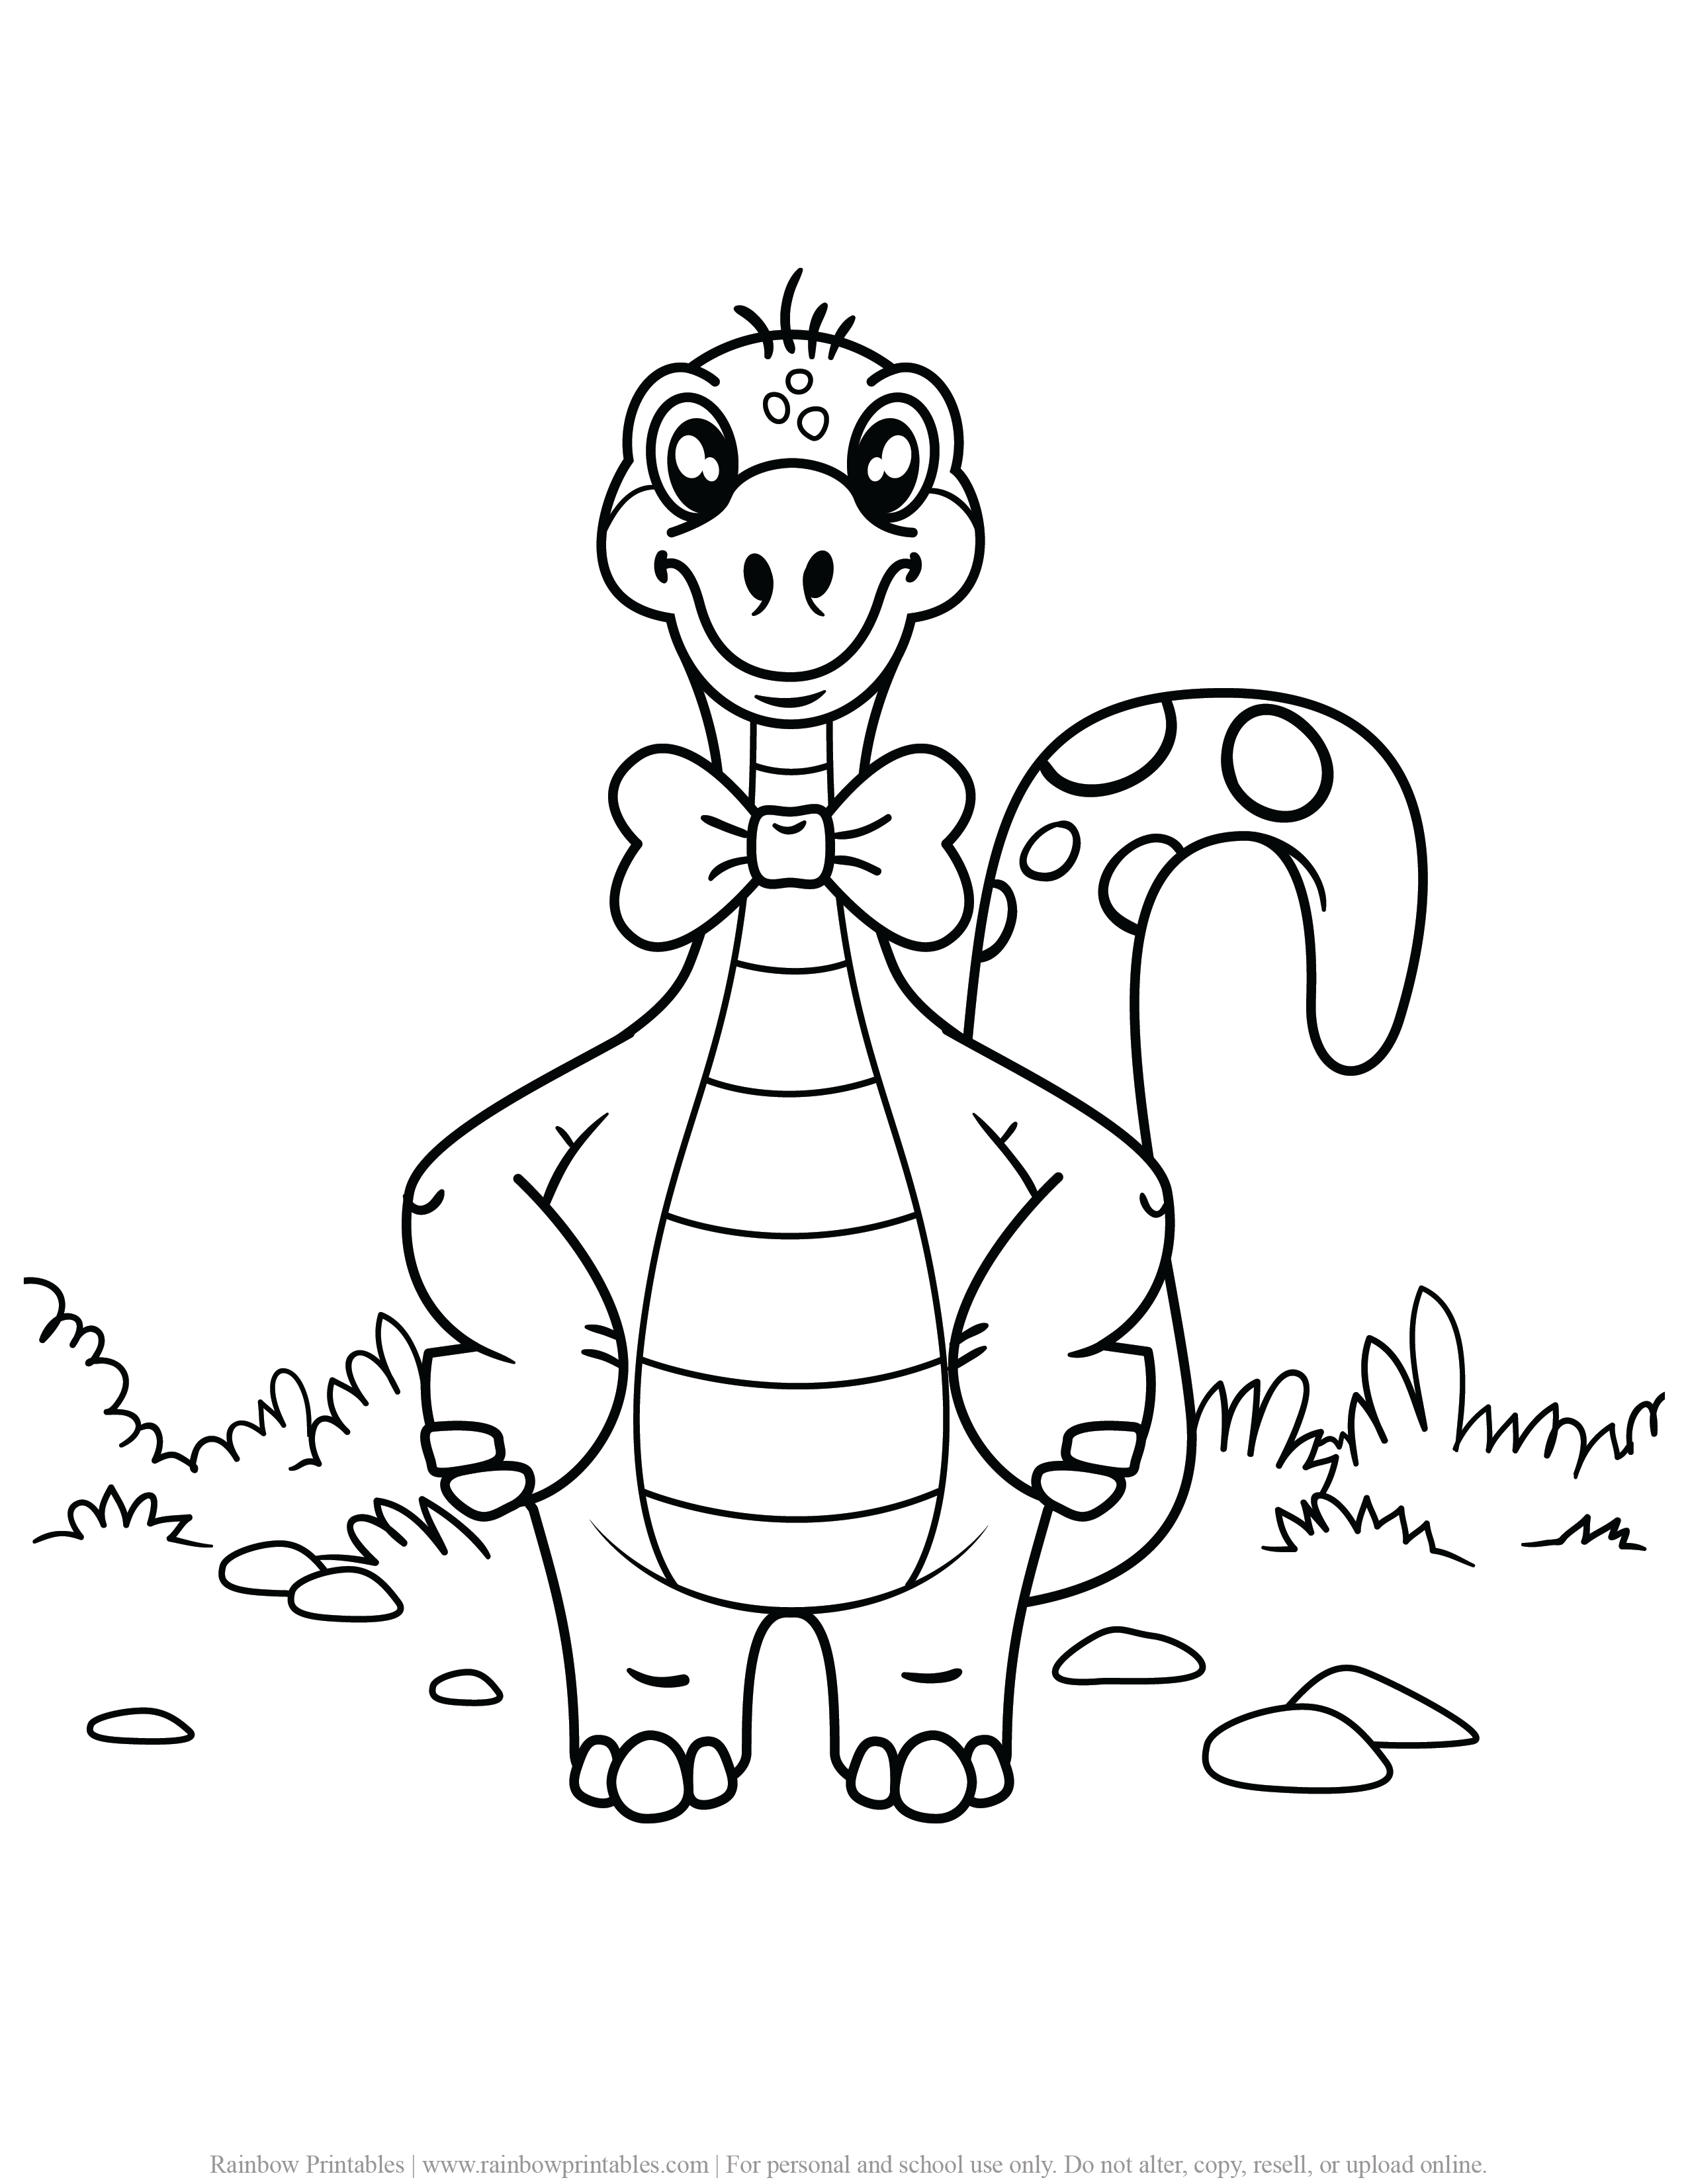 FREE DINOSAUR COLORING PAGES ACTIVITY FOR KIDS AND BOYS DINO DRAGON PRINTABLE-08